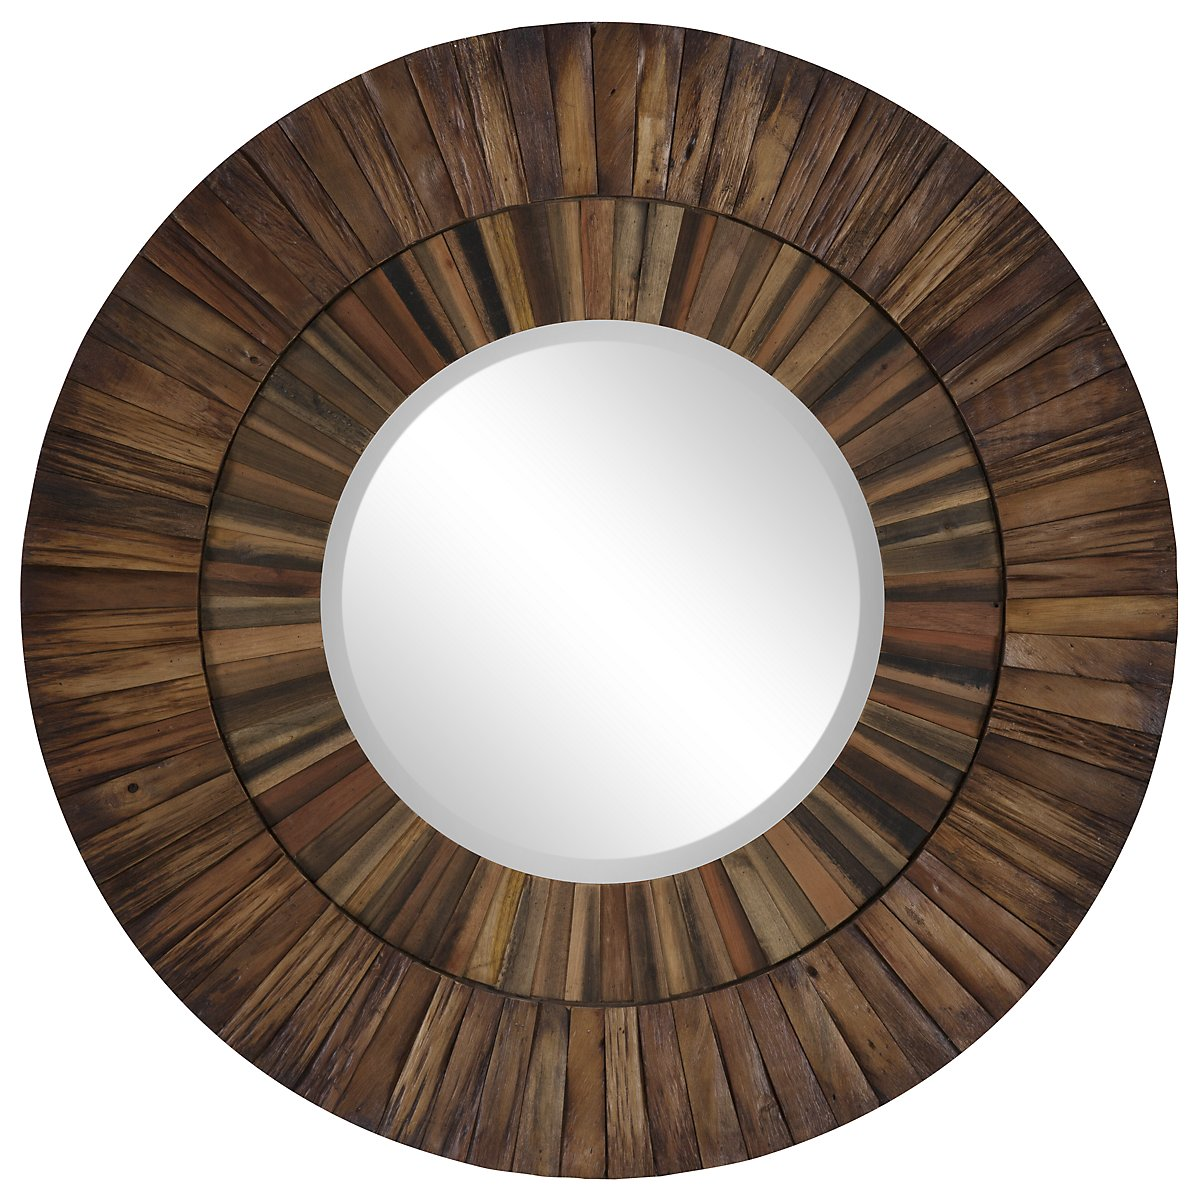 Shades Wood Mirror